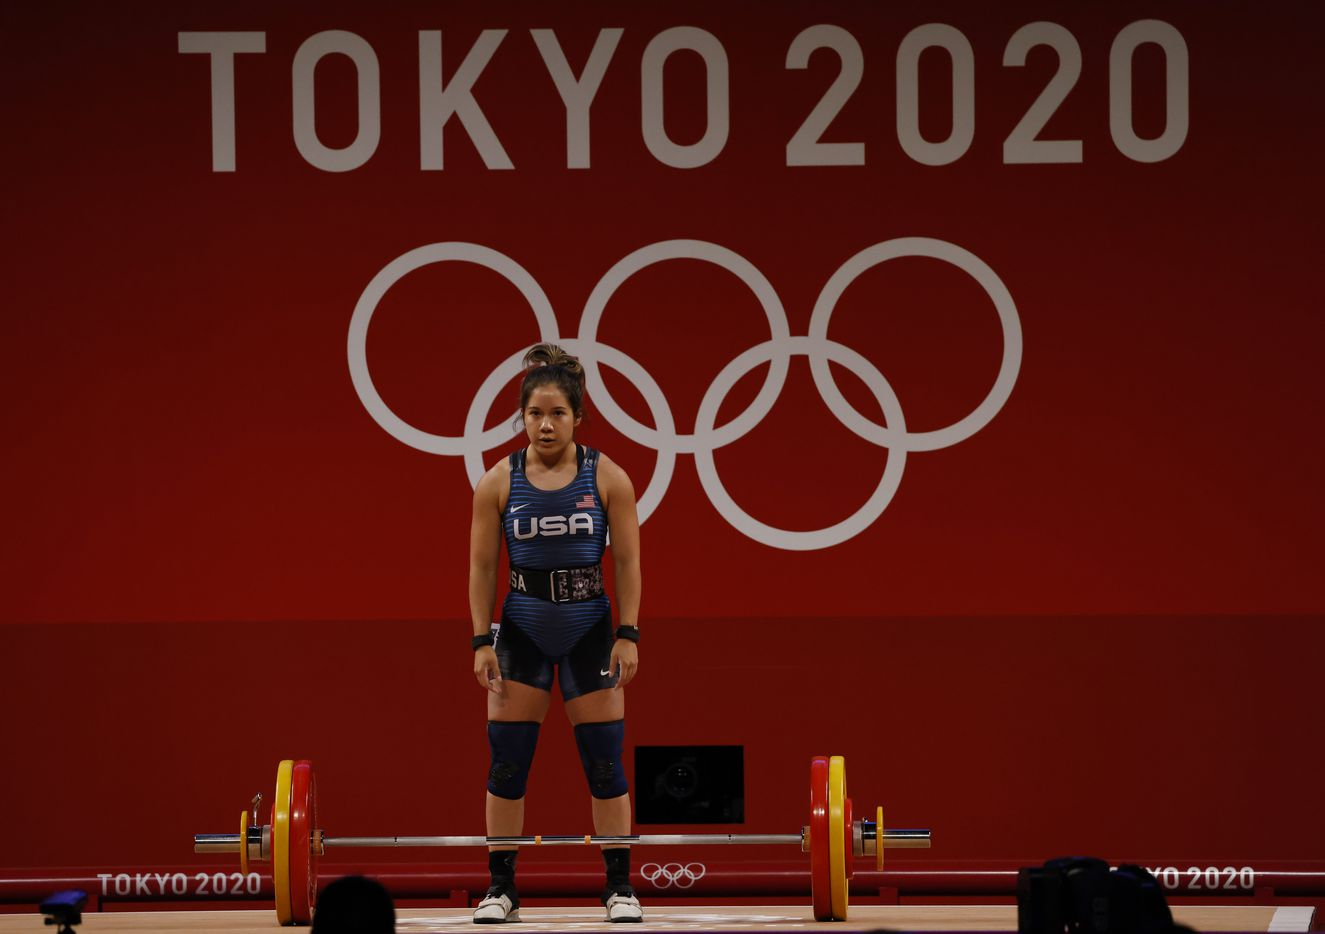 USA's Jourdan Delacruz prepares to lift 108 kg on her third attempt in the clean and jerk round during the women's 49 kg weightlifting final during the postponed 2020 Tokyo Olympics at Tokyo International Forum on Saturday, July 24, 2021, in Tokyo, Japan. Delacruz received a no-lift on all three attempts of the clean and jerk round. (Vernon Bryant/The Dallas Morning News)